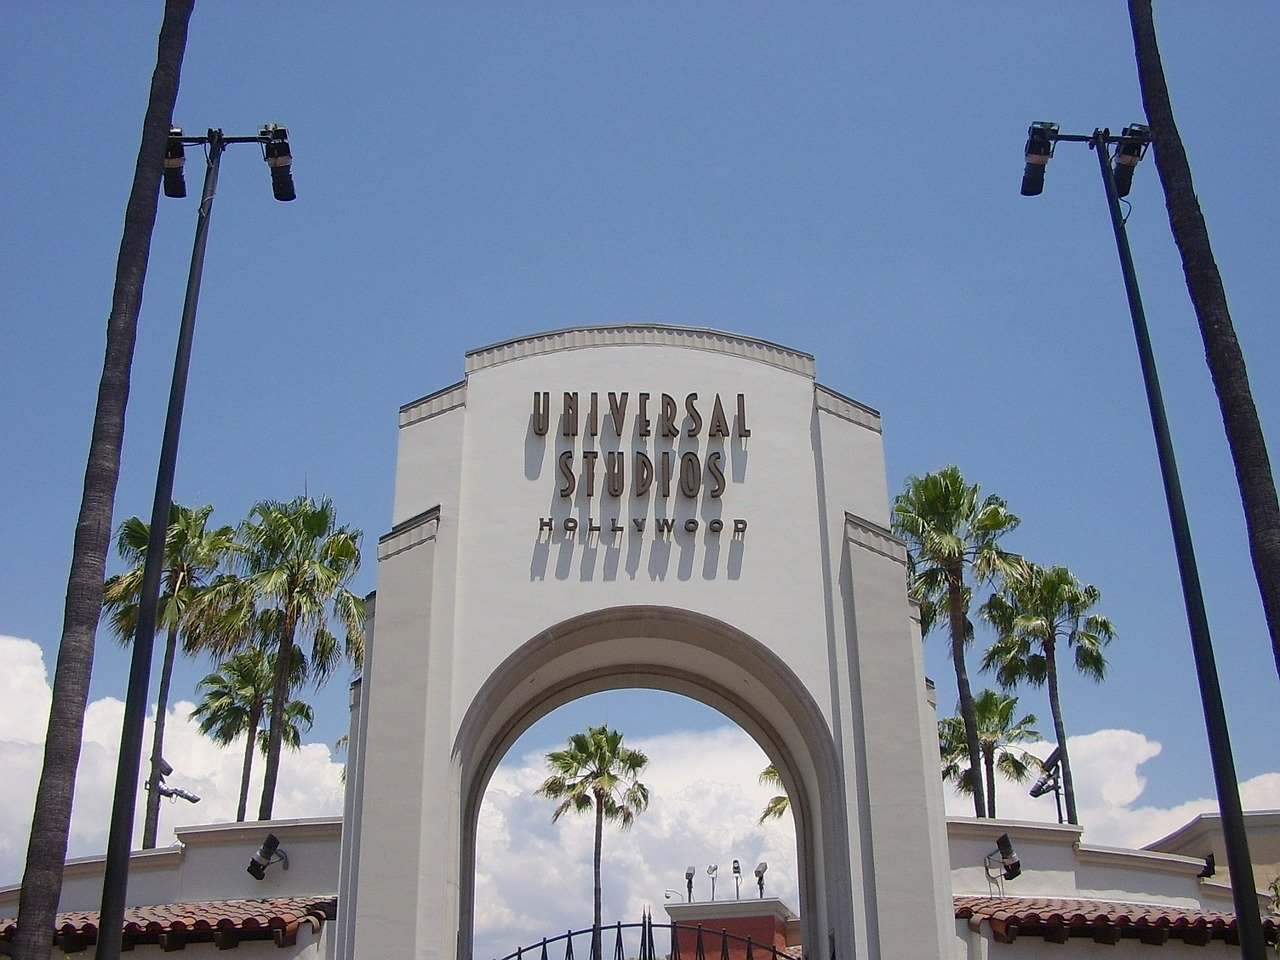 Awesome Theme Park In California-Universal Studios Hollywood